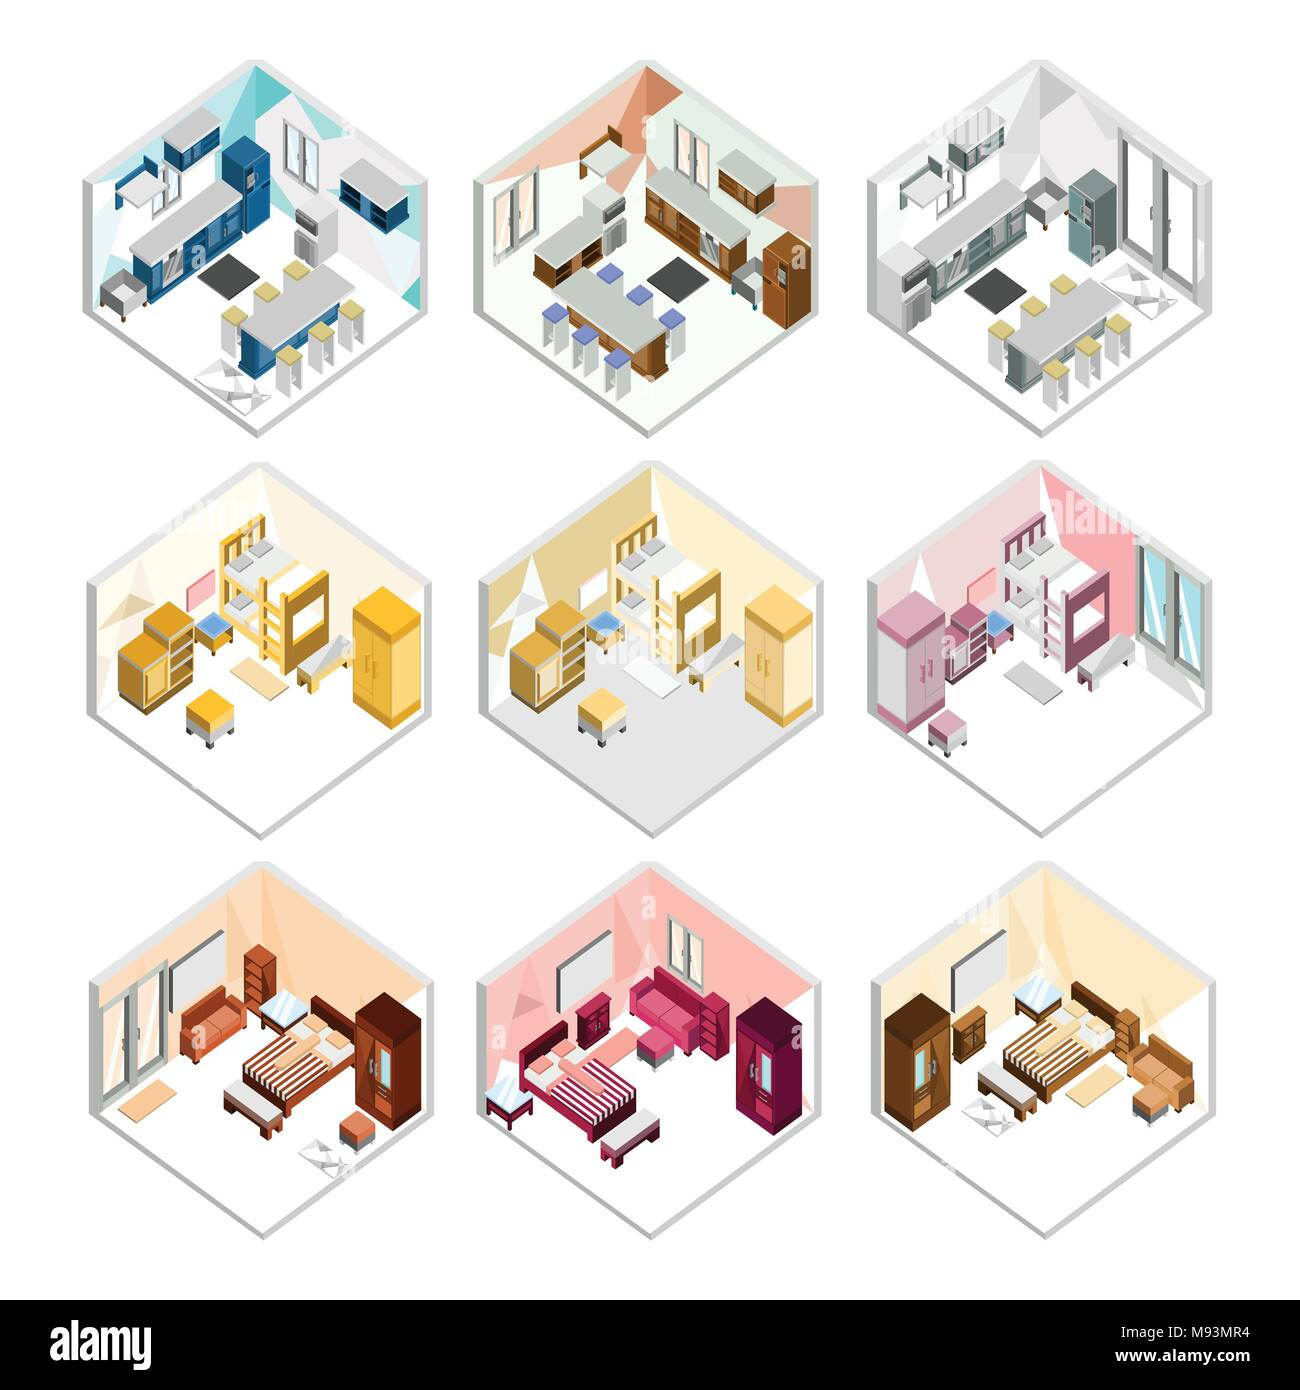 Various Design Of Isometric Home Interior Vector Illustration Graphic Set Stock Vector Image Art Alamy